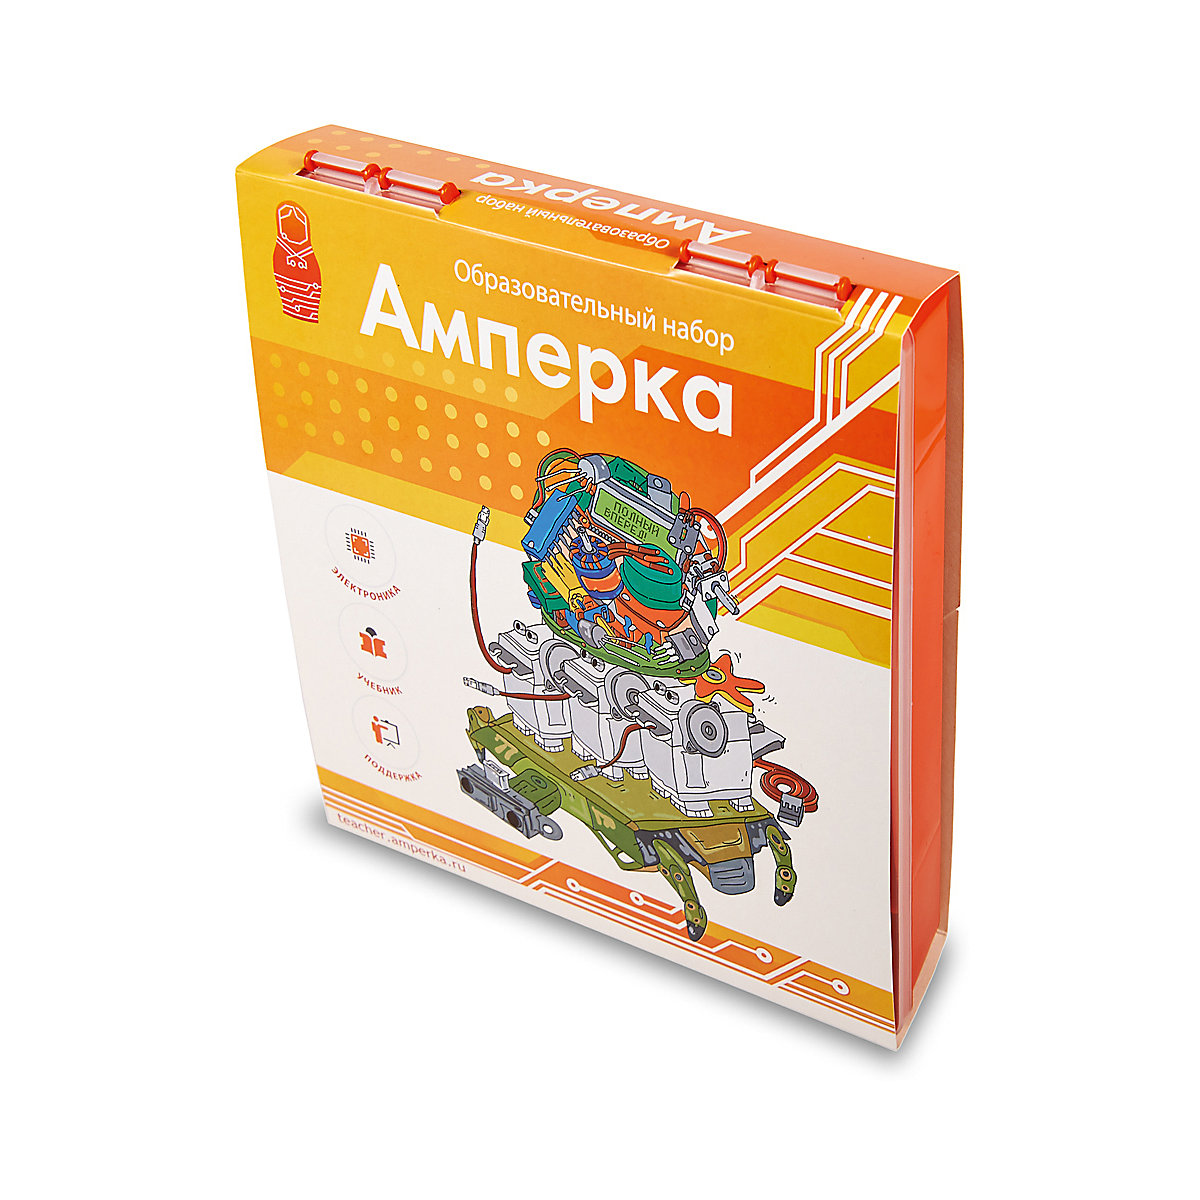 AMPERKA Blocks 5427690 toys for boys girls building construction educational developing toy game play team modeling boy girl baby educational toys katamino blocks wood learning tetris blocks tangram slide building blocks children wooden toys gift